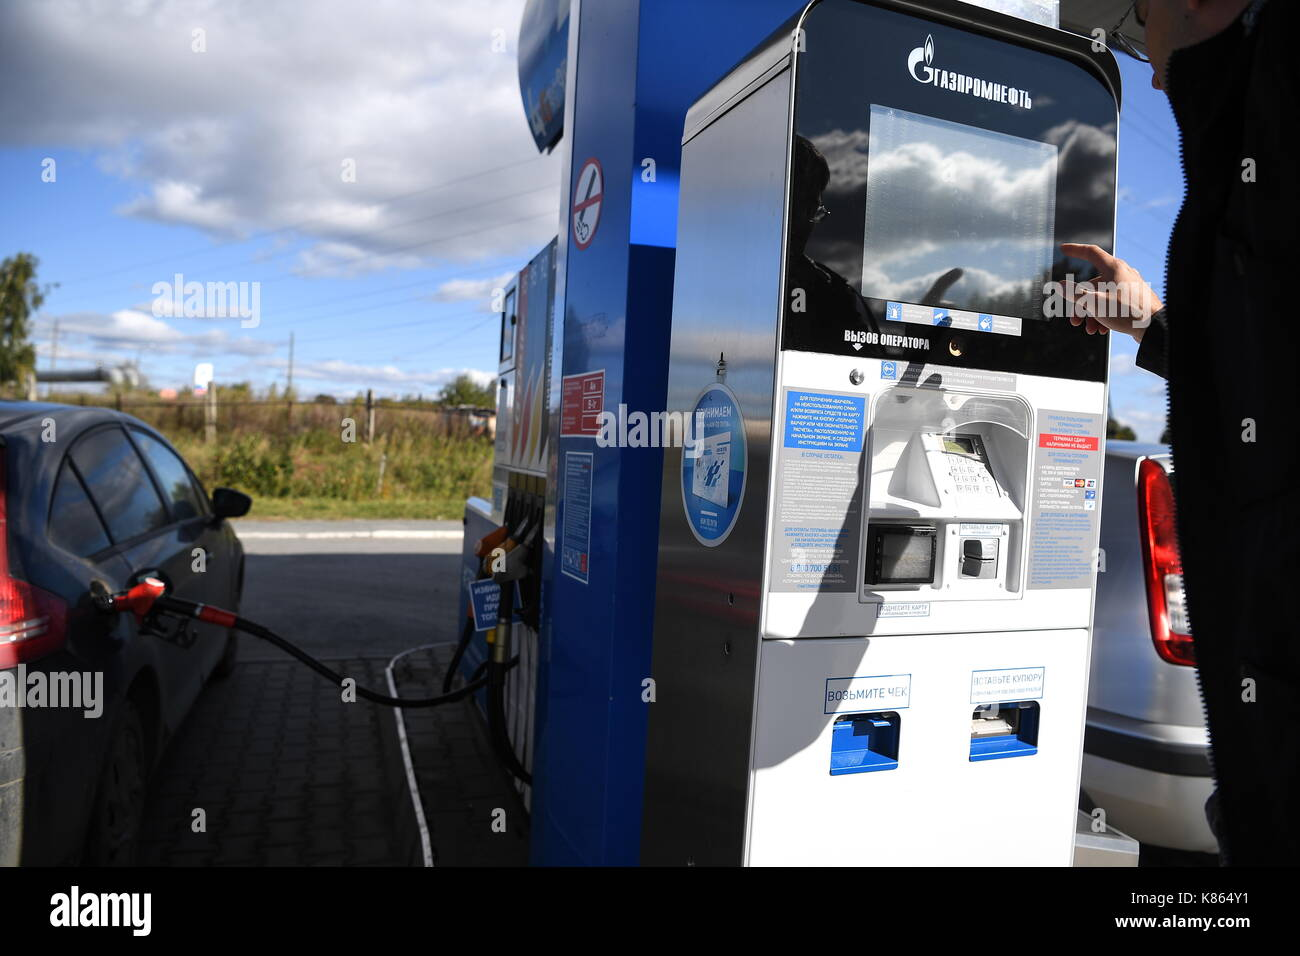 Excise on fuel in Russia